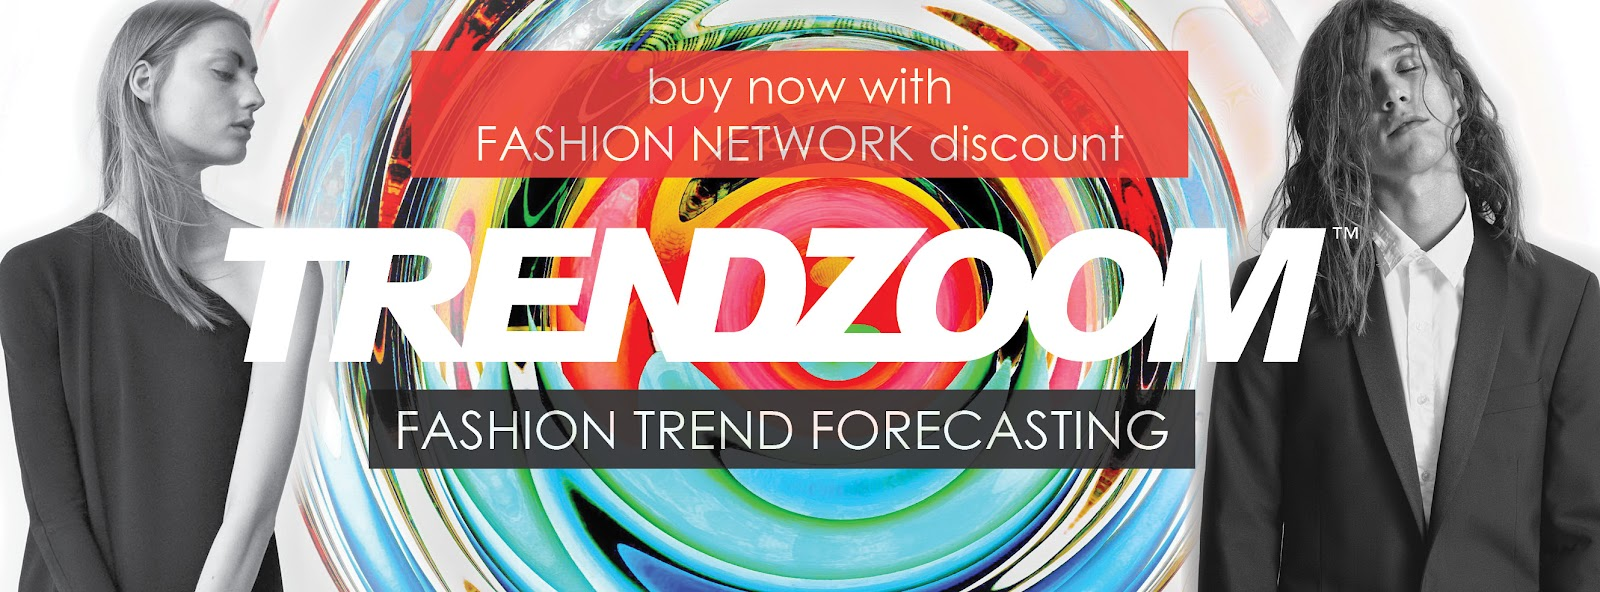 Trendzoom Fashion Colour Forecast S S 2019 Trends 944636